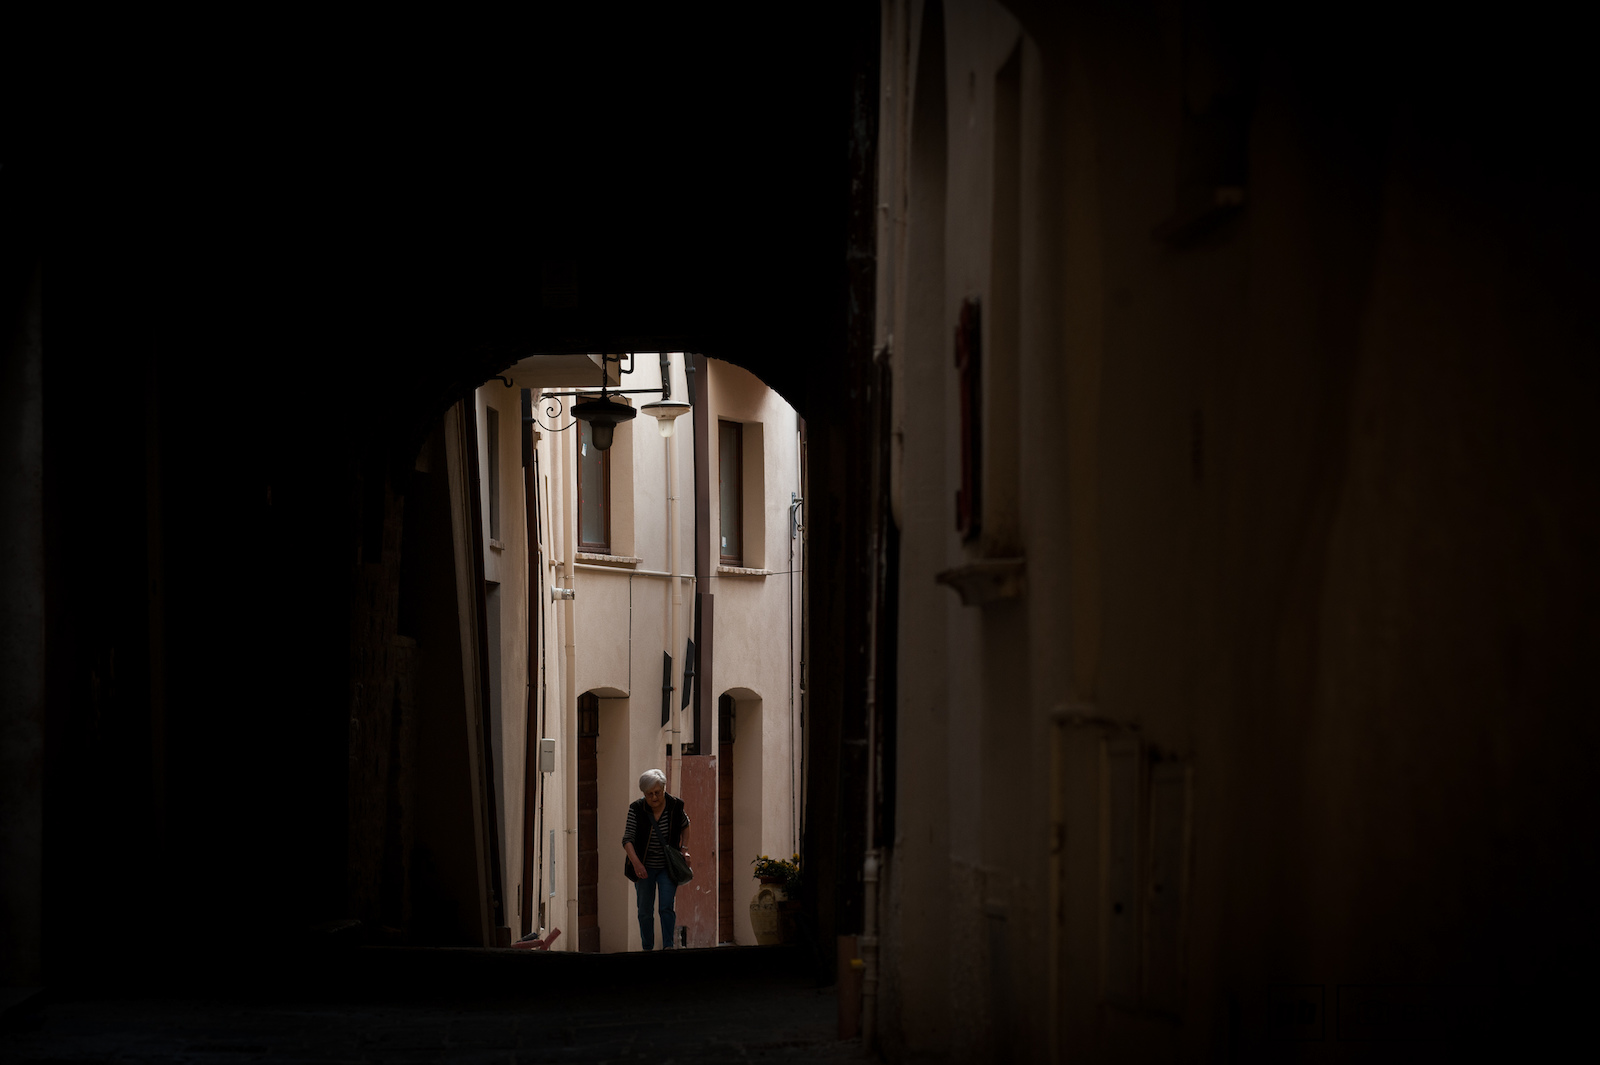 A typical ancient Italian town has maze like narrow streets either a shortcut or a pathway somewhere new.